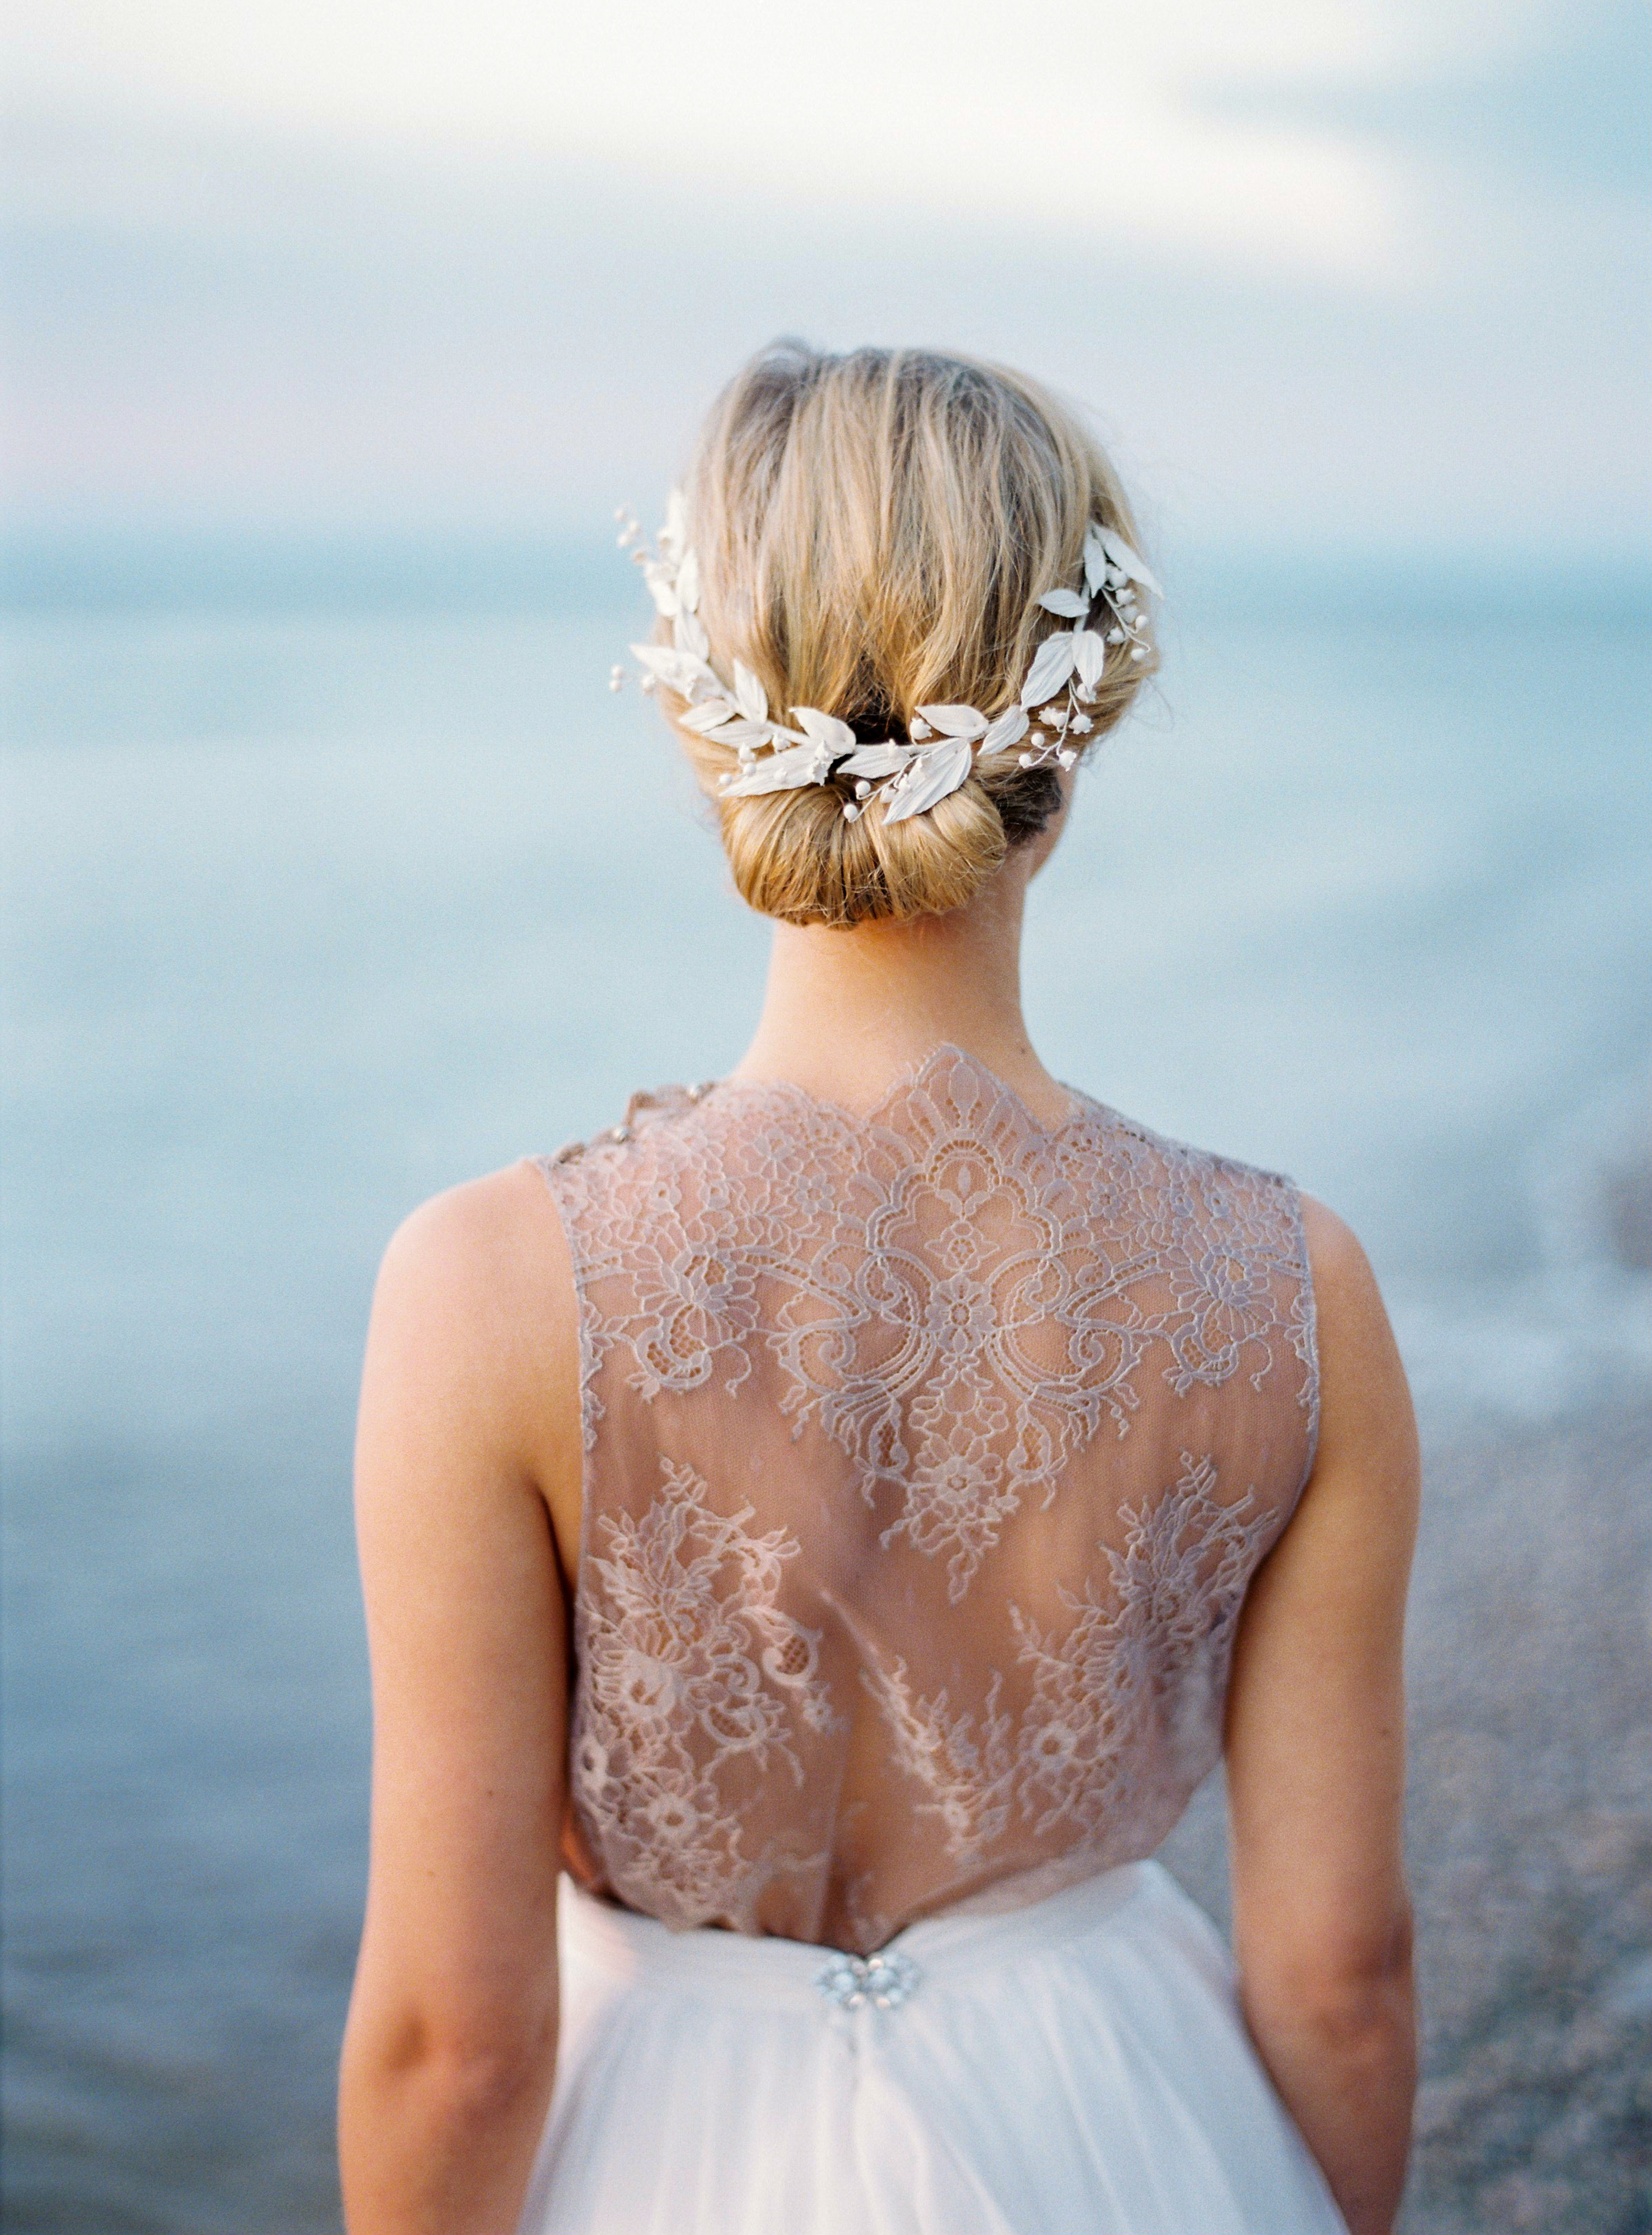 bride with porcelain hair accessory and lace-backed gown